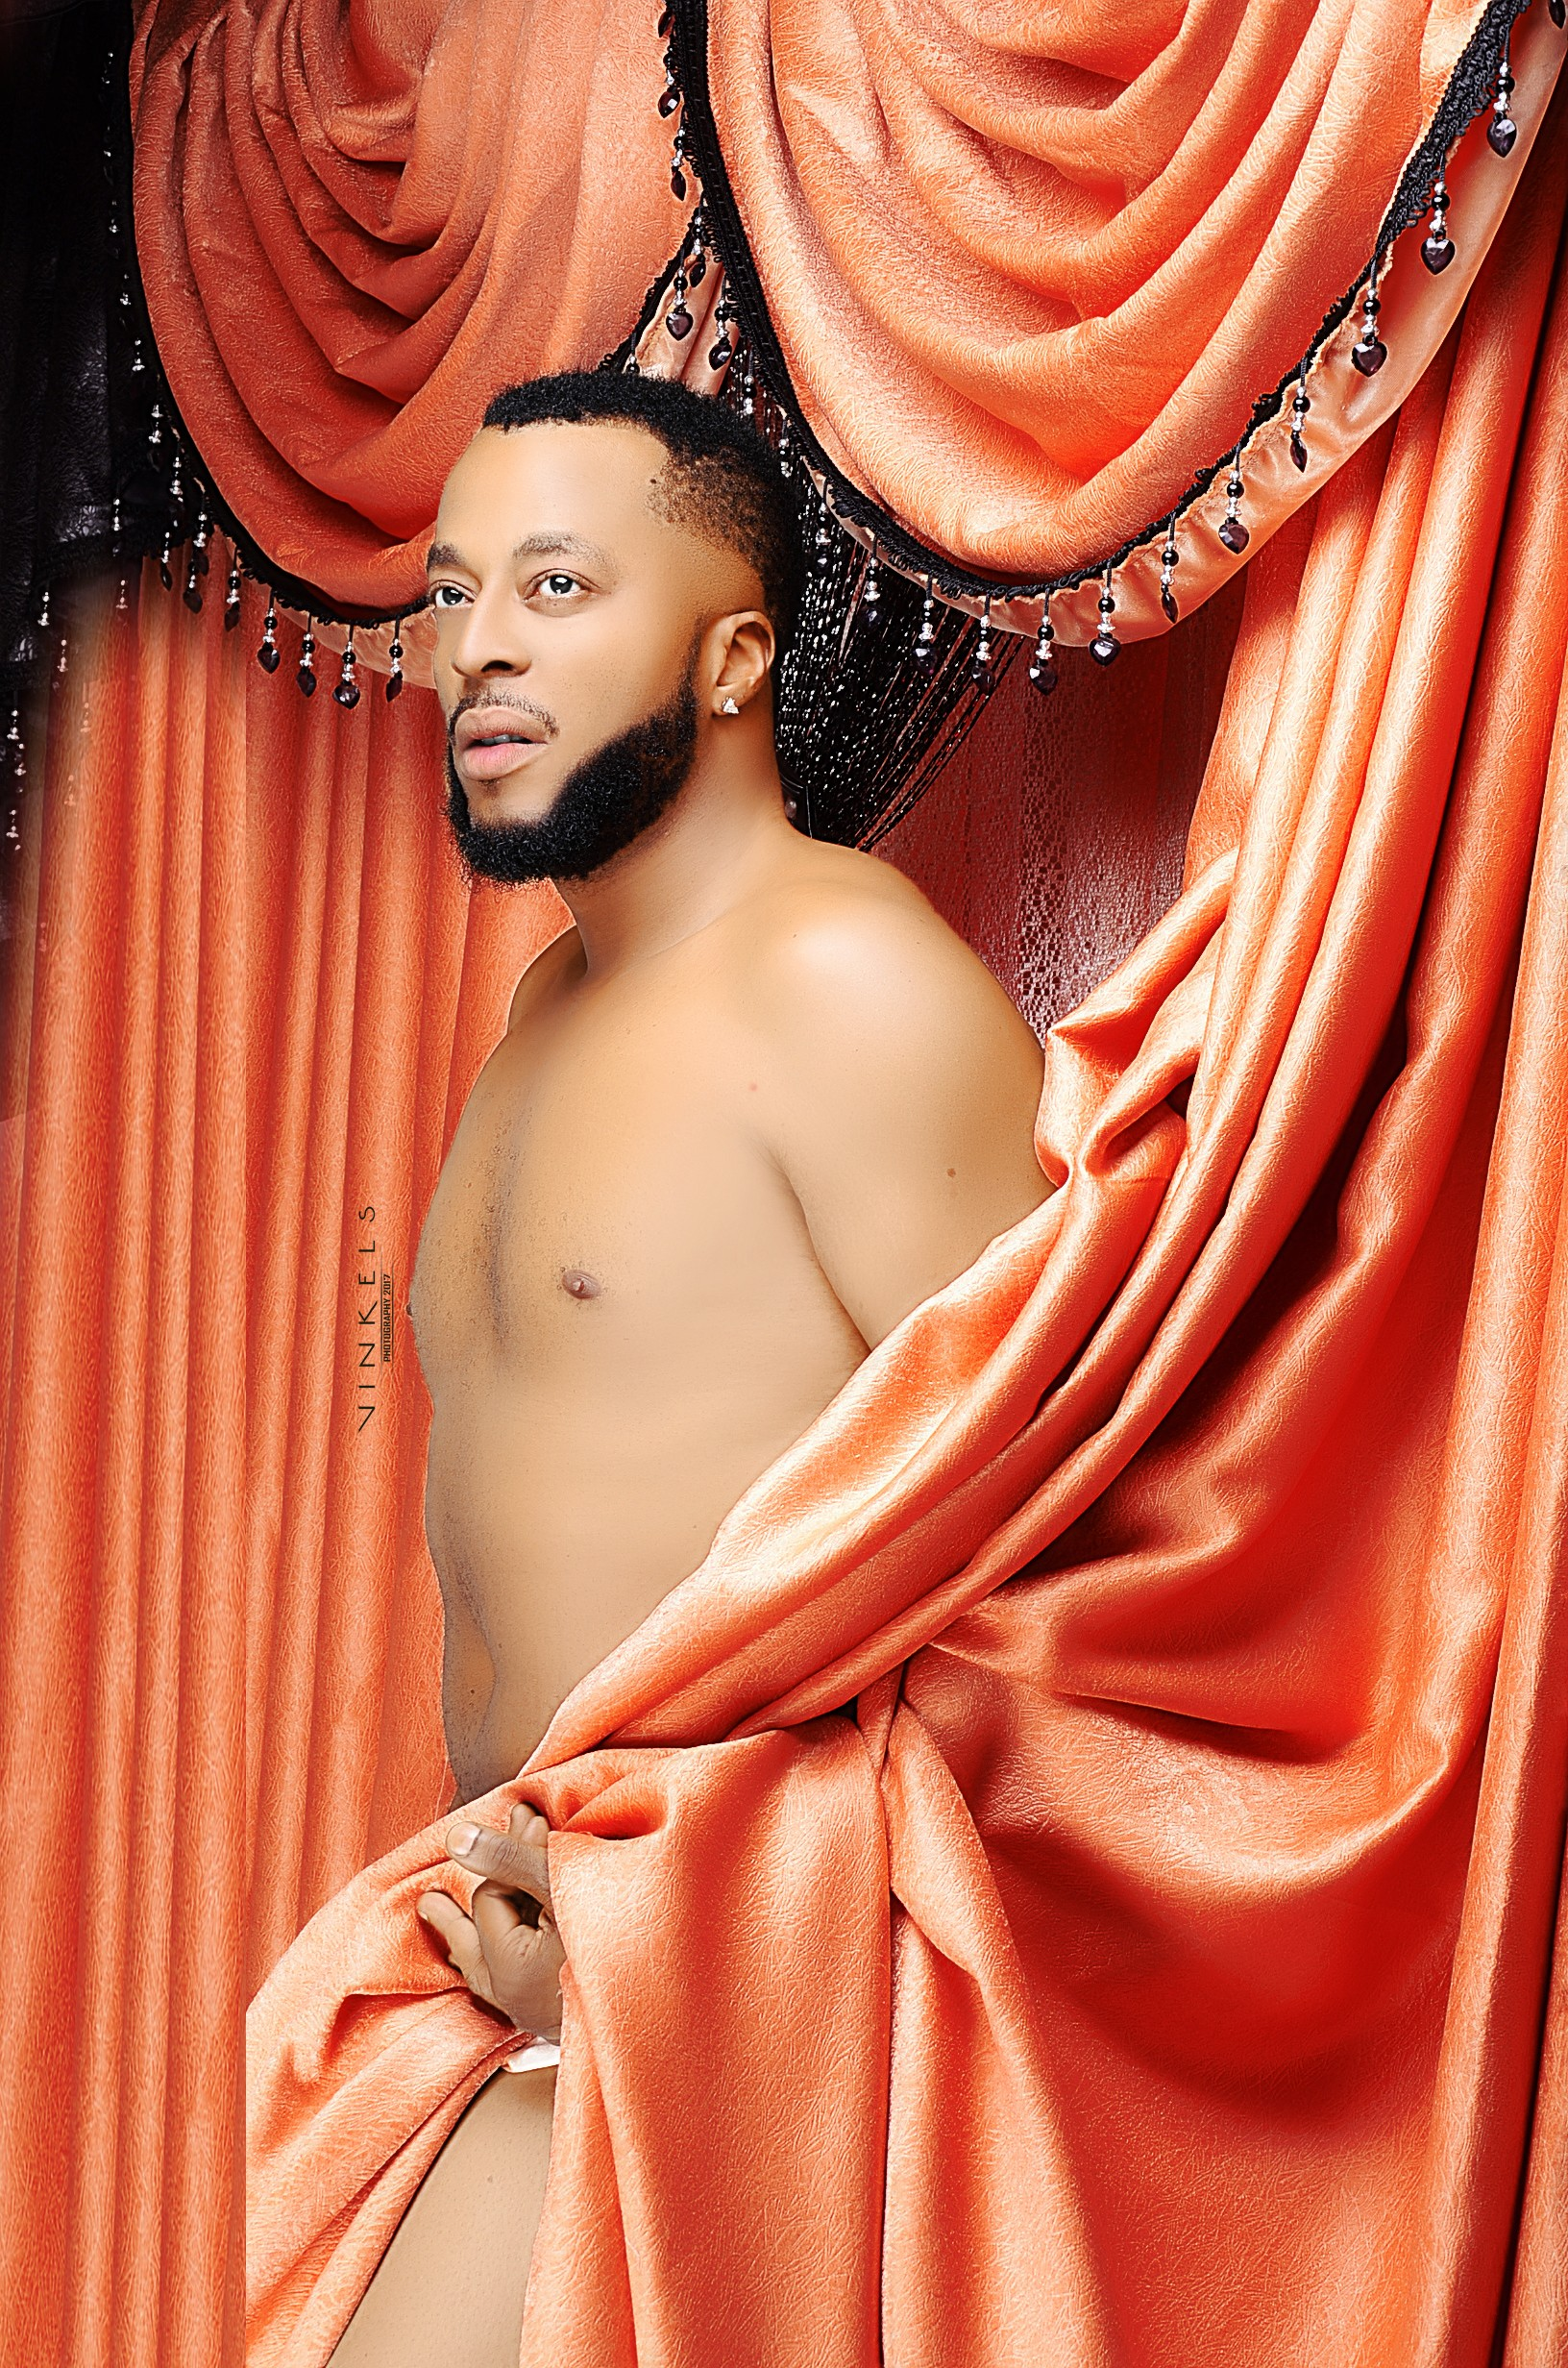 Actor Benson Okonkwo releases semi-nude photos